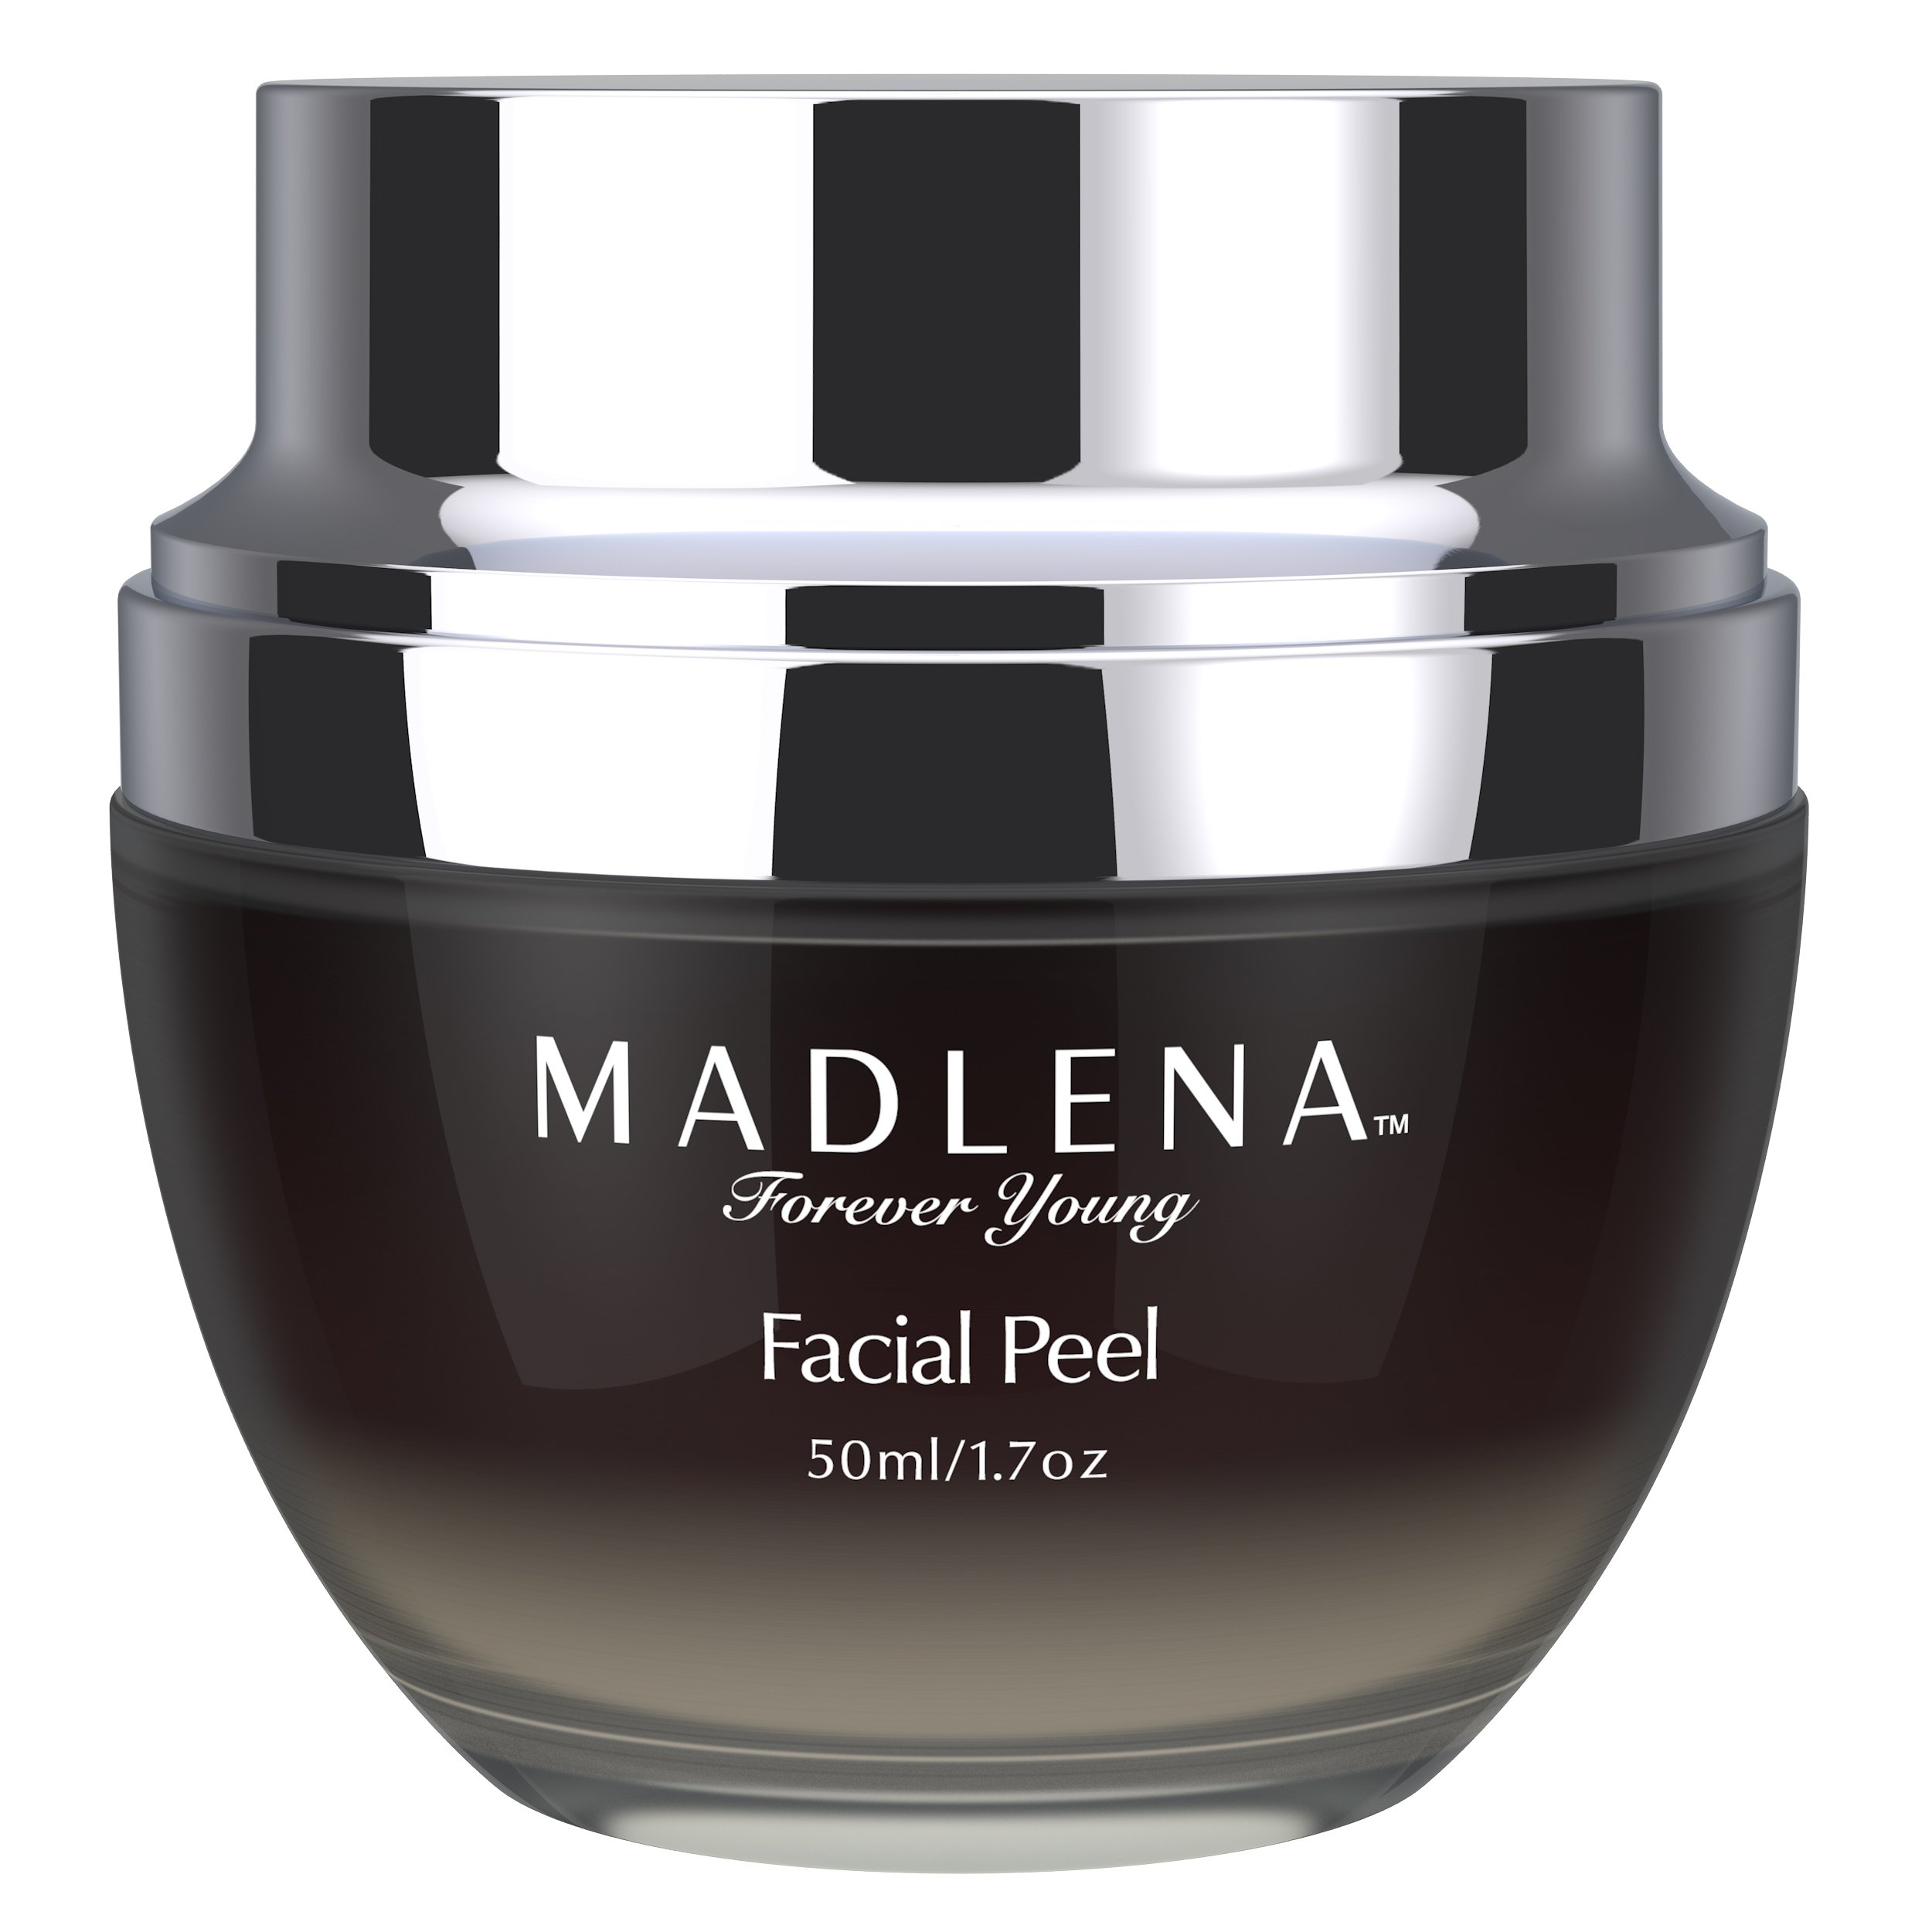 Madlena Platinum-Infused Anti-Aging Facial Peel - Anti-Wrinkle Face Peeling Gel for Flawless Skin - Reduce Lines and Sun Spots - Eliminate Acne and Blemishes - Moisturize and Replenish